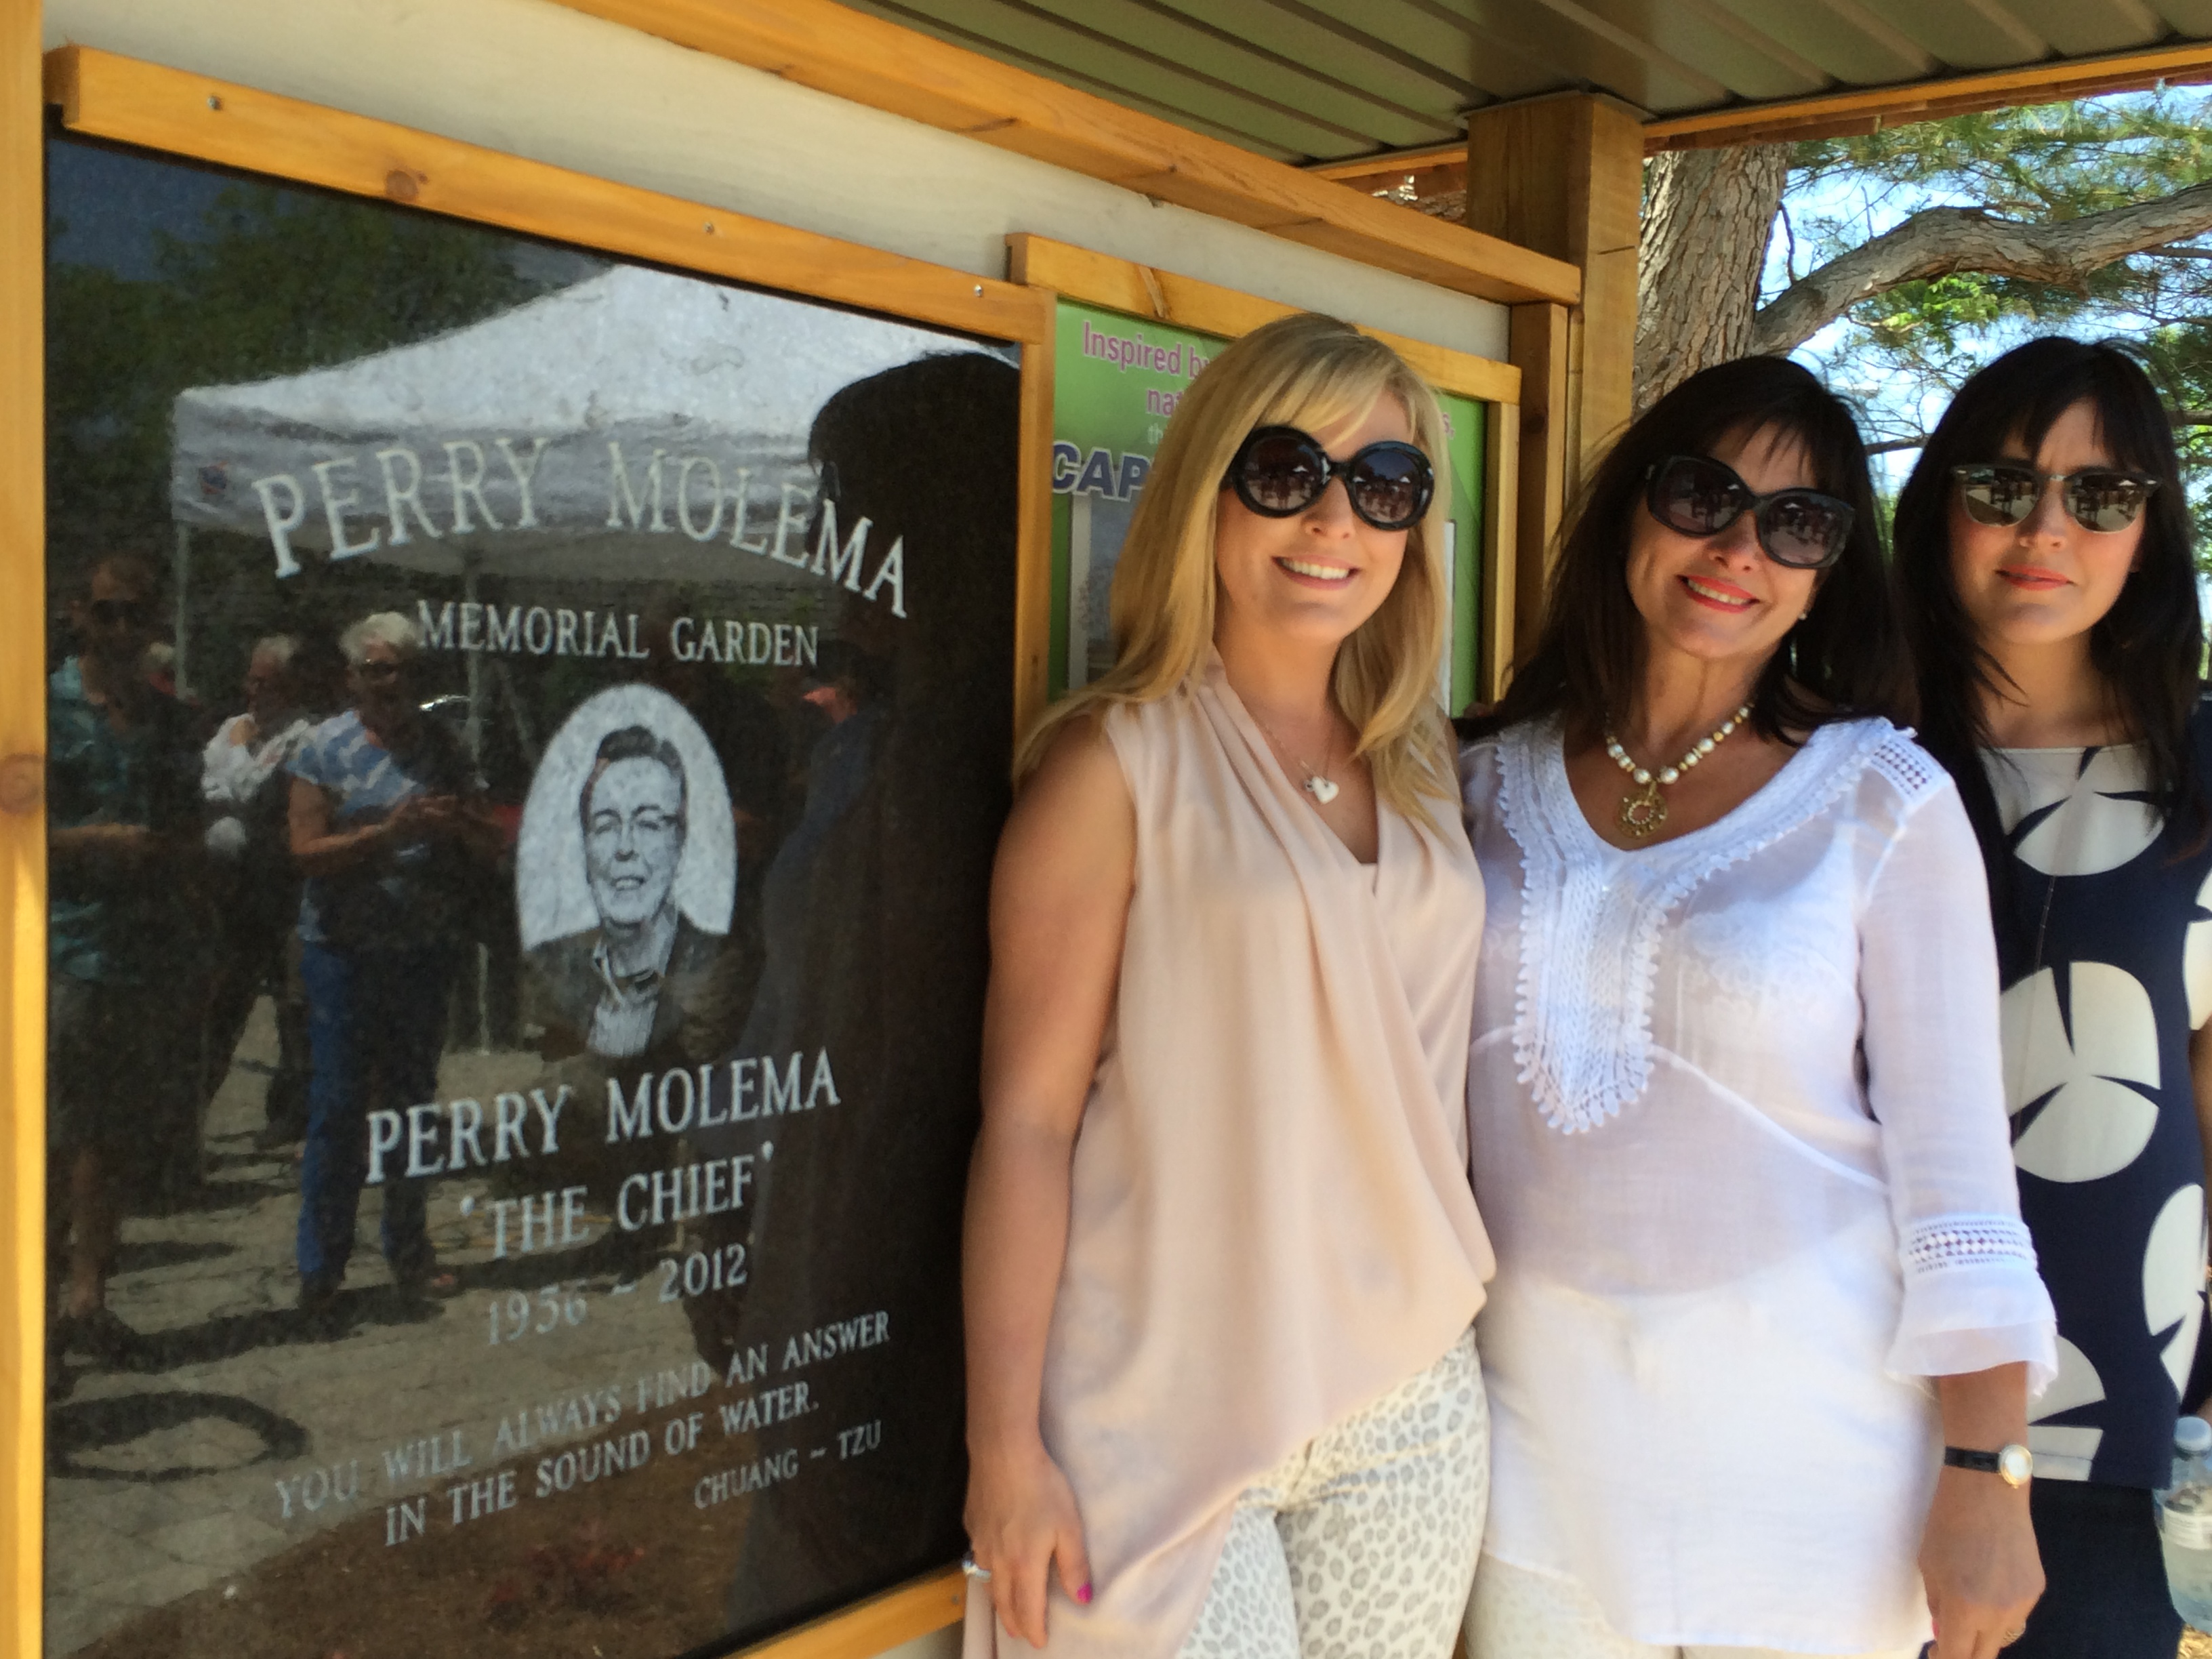 A memorial service on May 31, 2014 at Zonta Park in Chatham to dedicate a water feature as part of Perry Meloma Memorial Garden. (Photo by Ricardo Veneza)